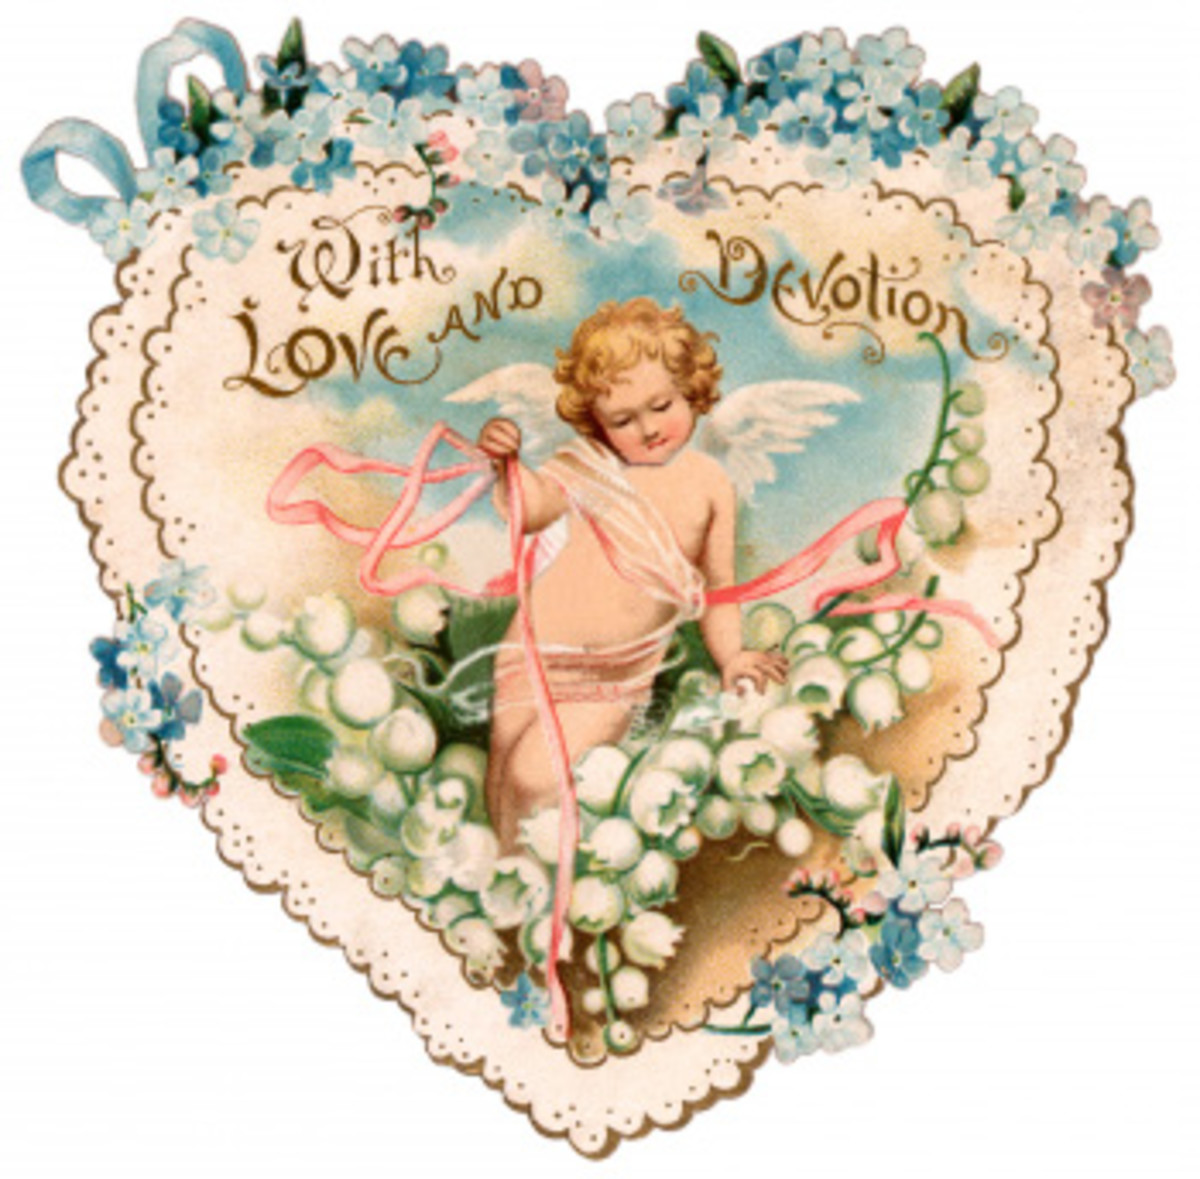 Have a lovely Valentines Day!